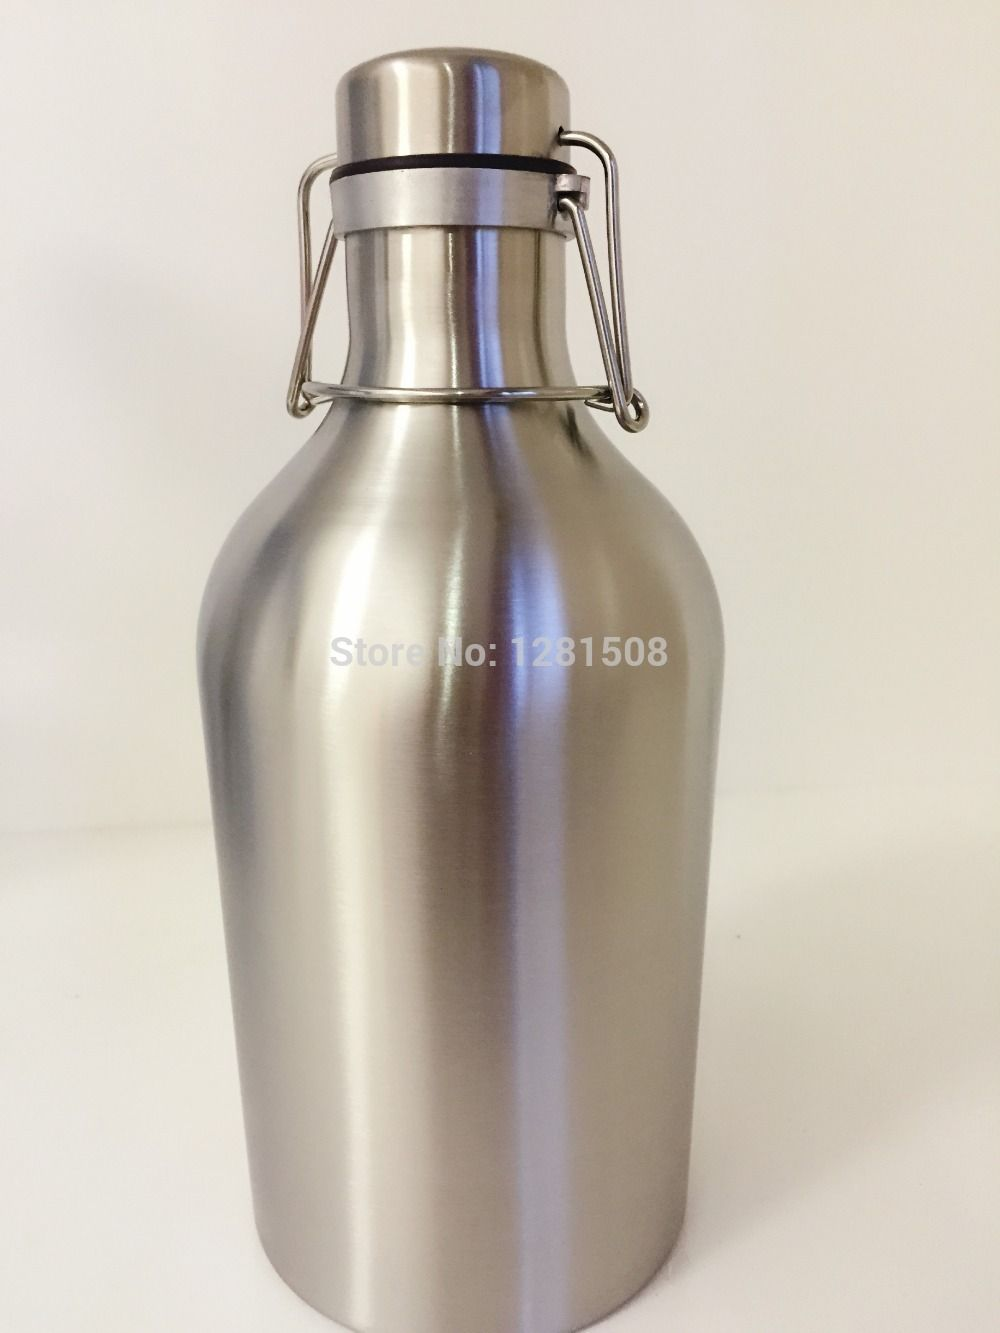 Find More Water Bottles Information about Stainless Steel